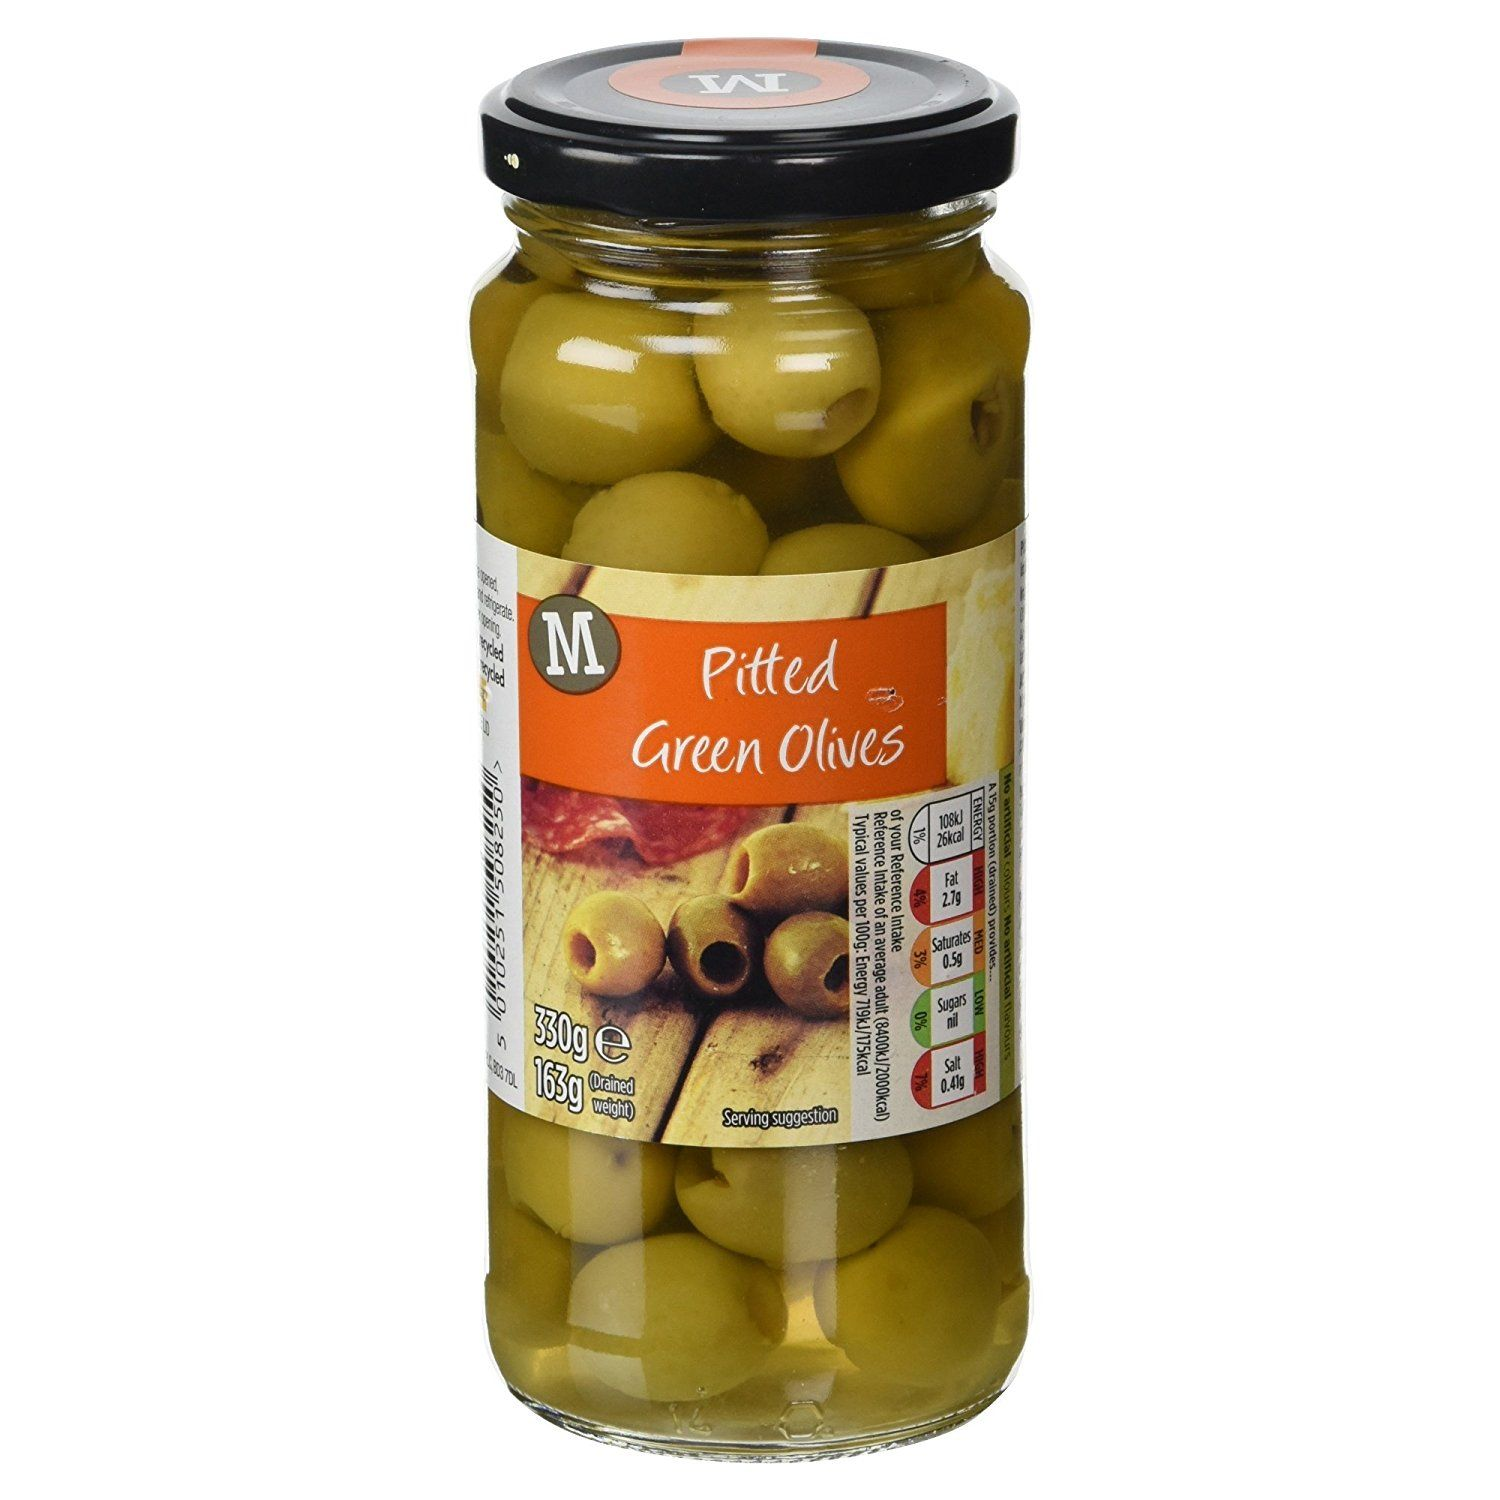 Morrisons Pitted Green Olives, 330g: Amazon.co.uk: Prime